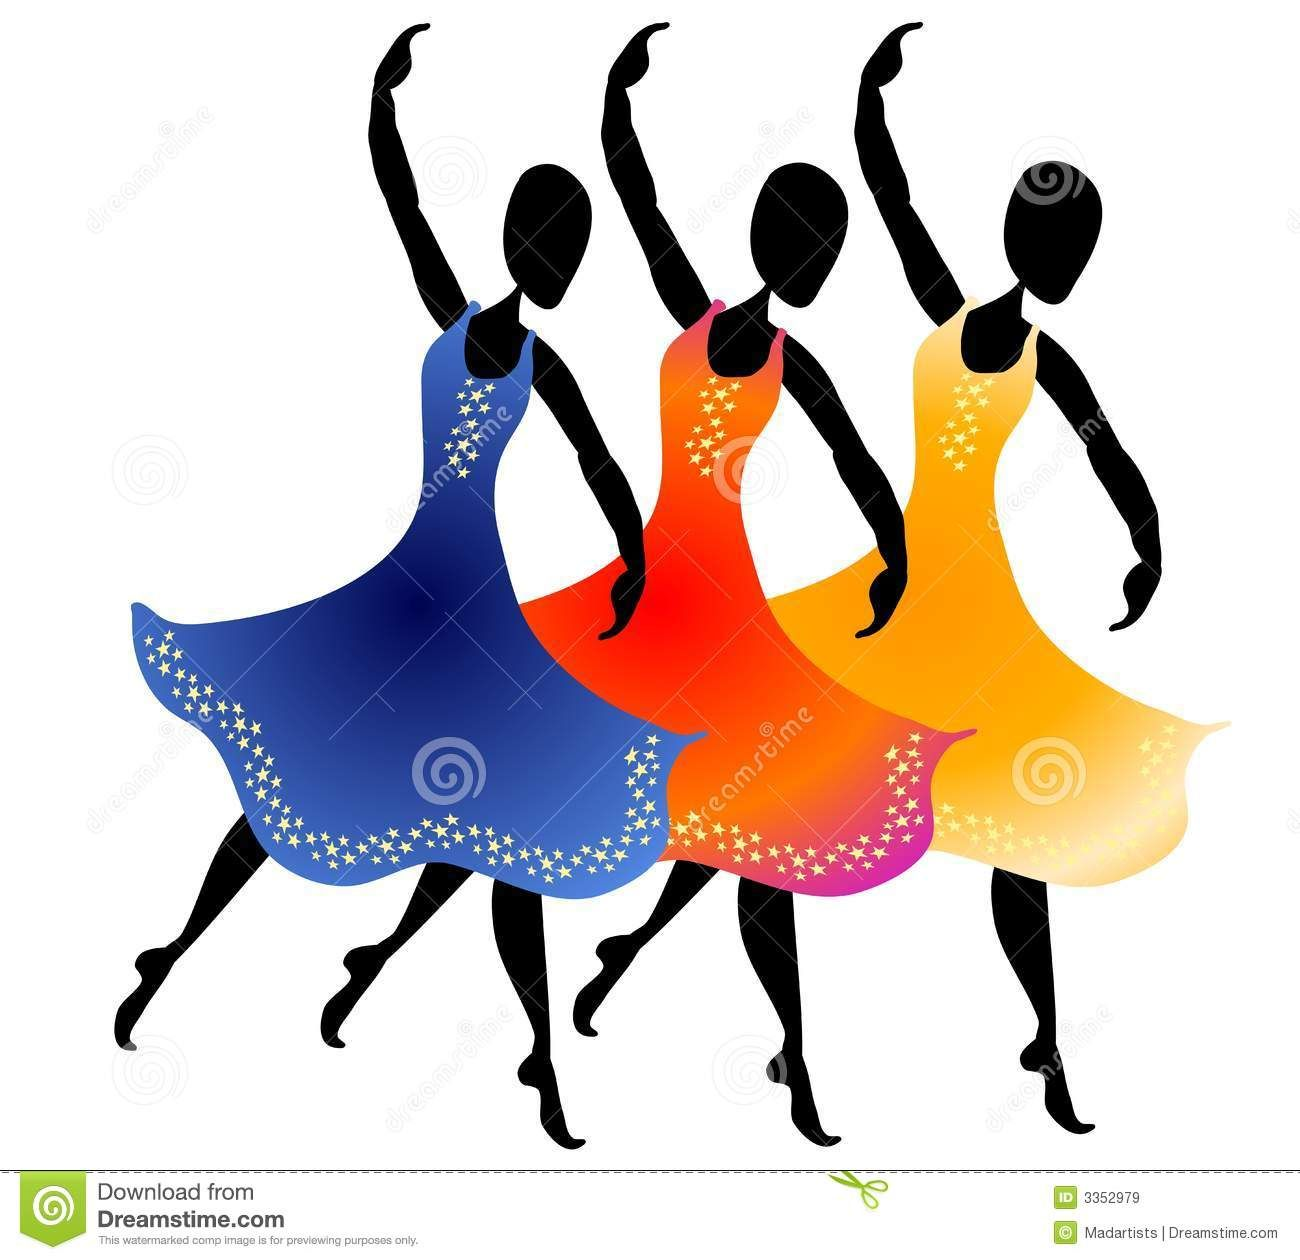 3 Women Dancing Clip Art Royalty Free Stock Images.